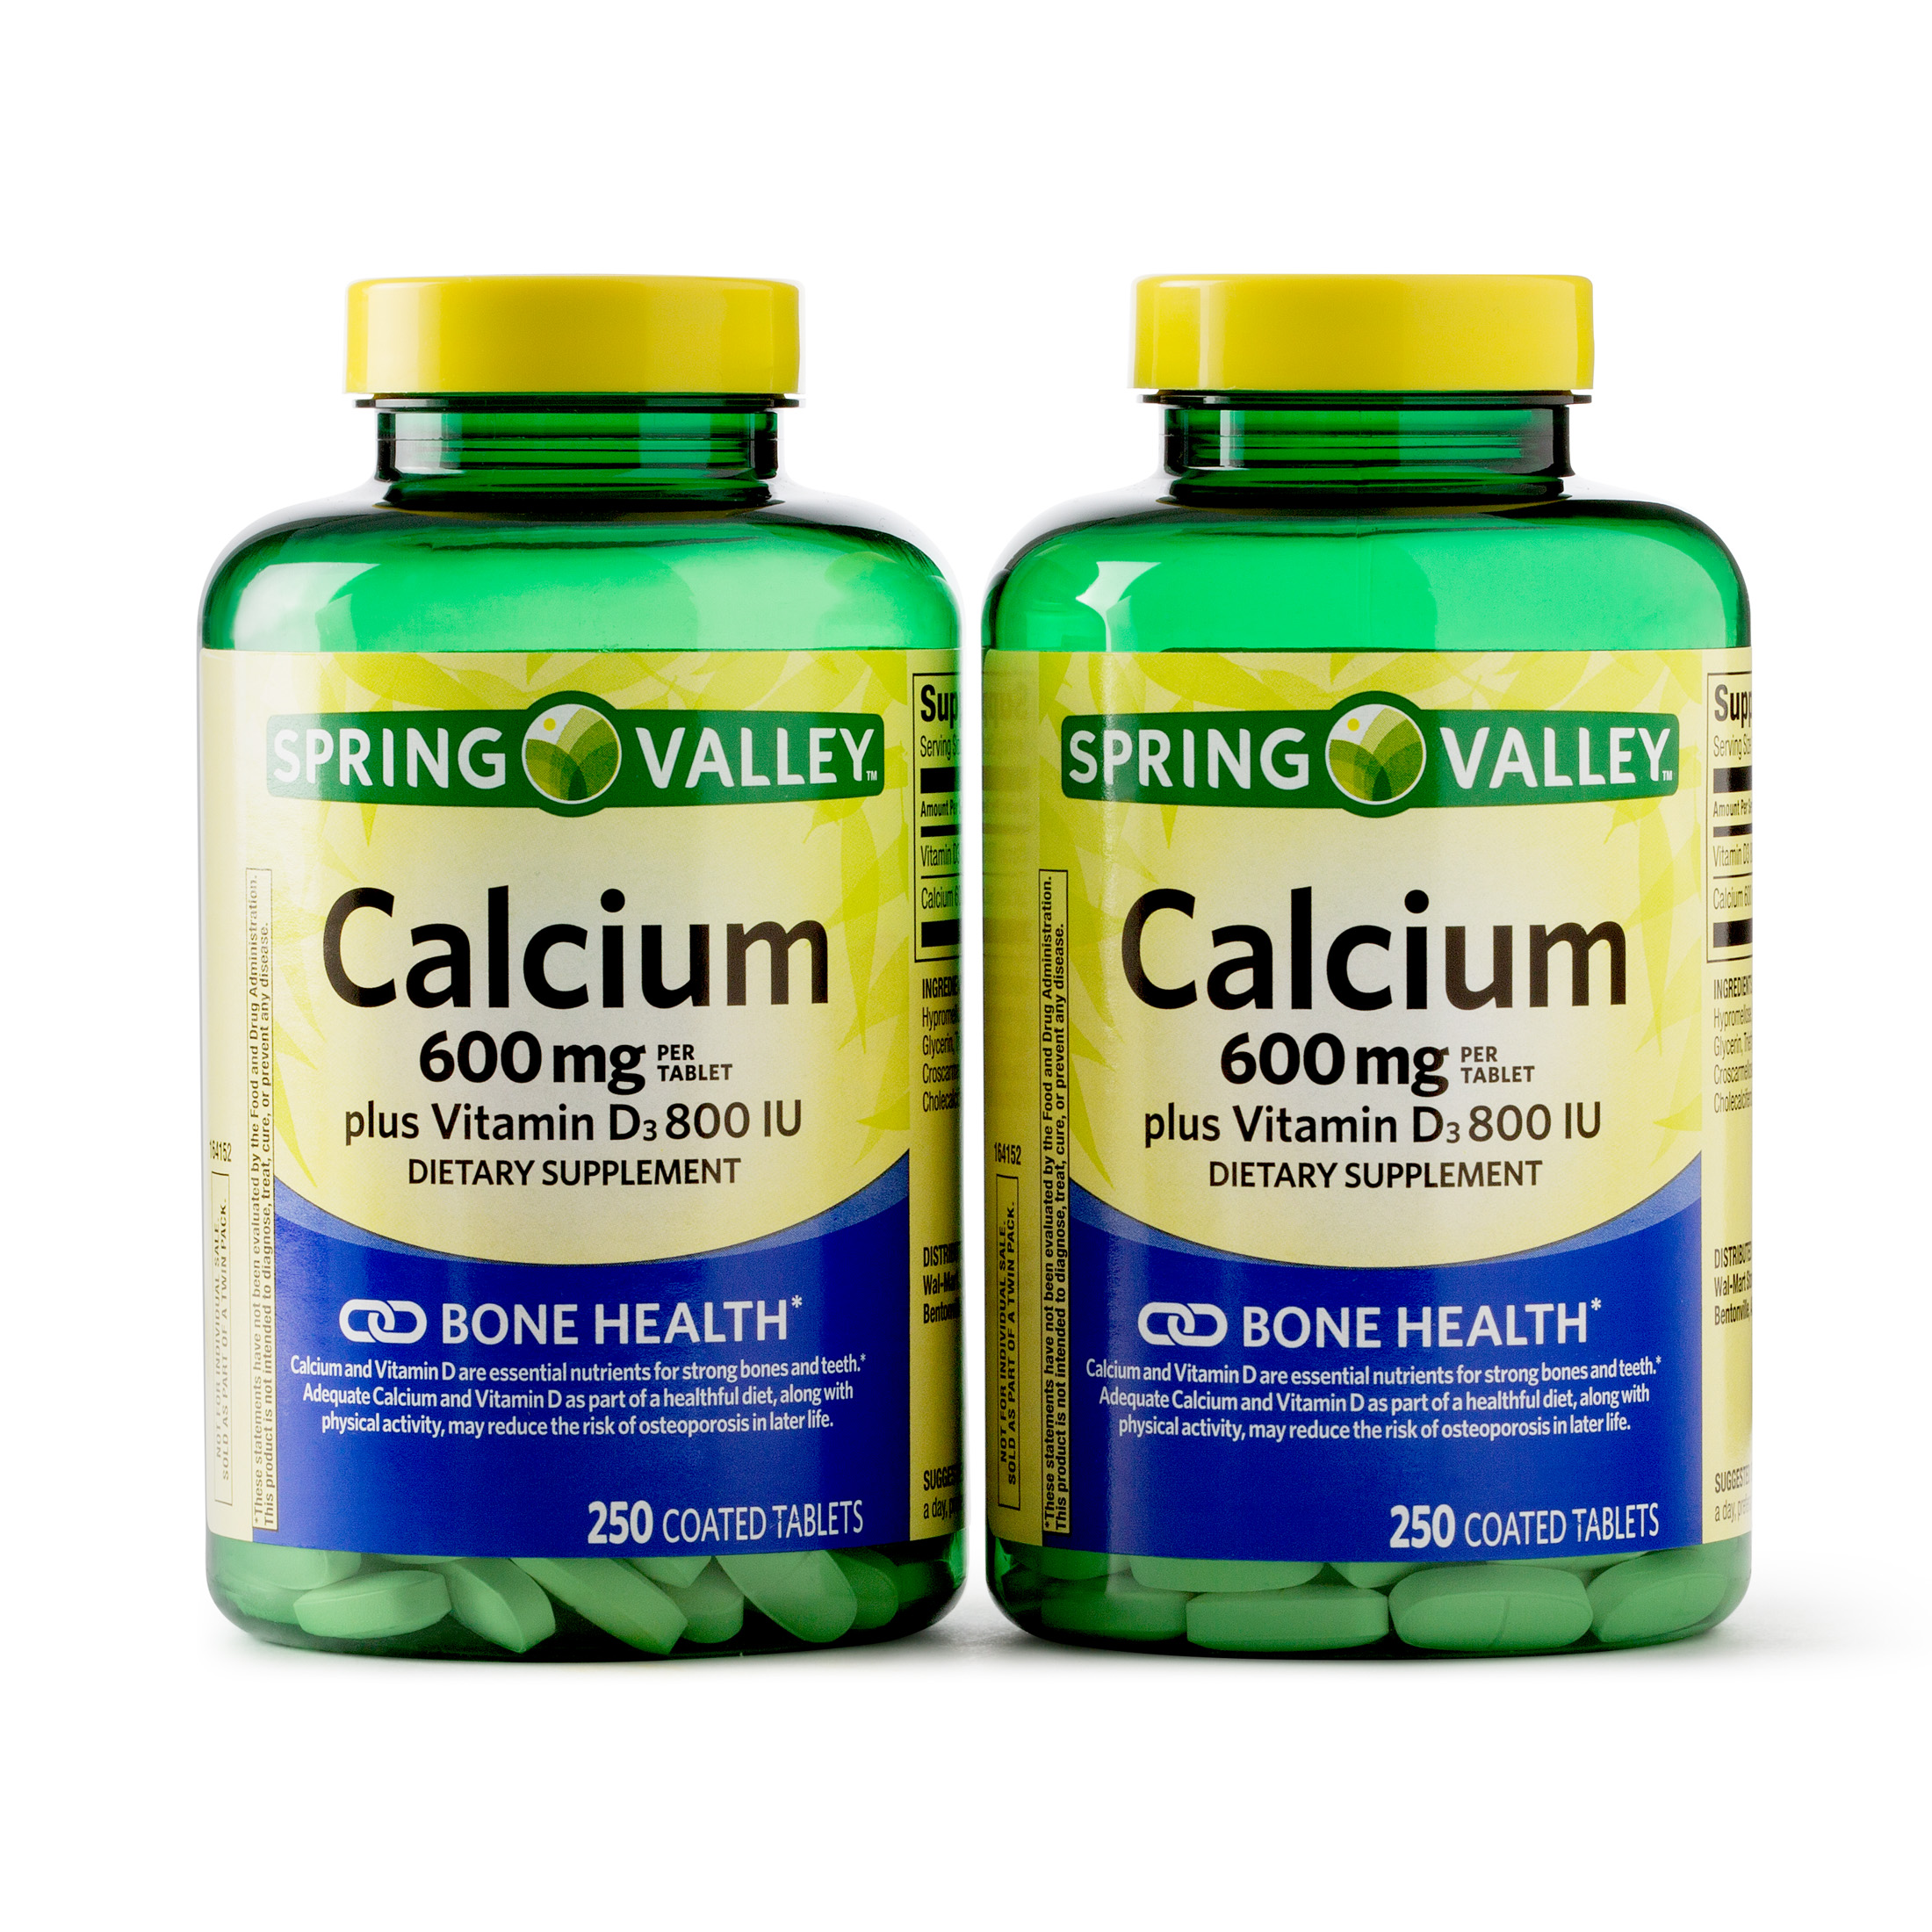 Spring Valley Calcium Coated Tablets, 600 mg, 250 Ct, 2 Pk